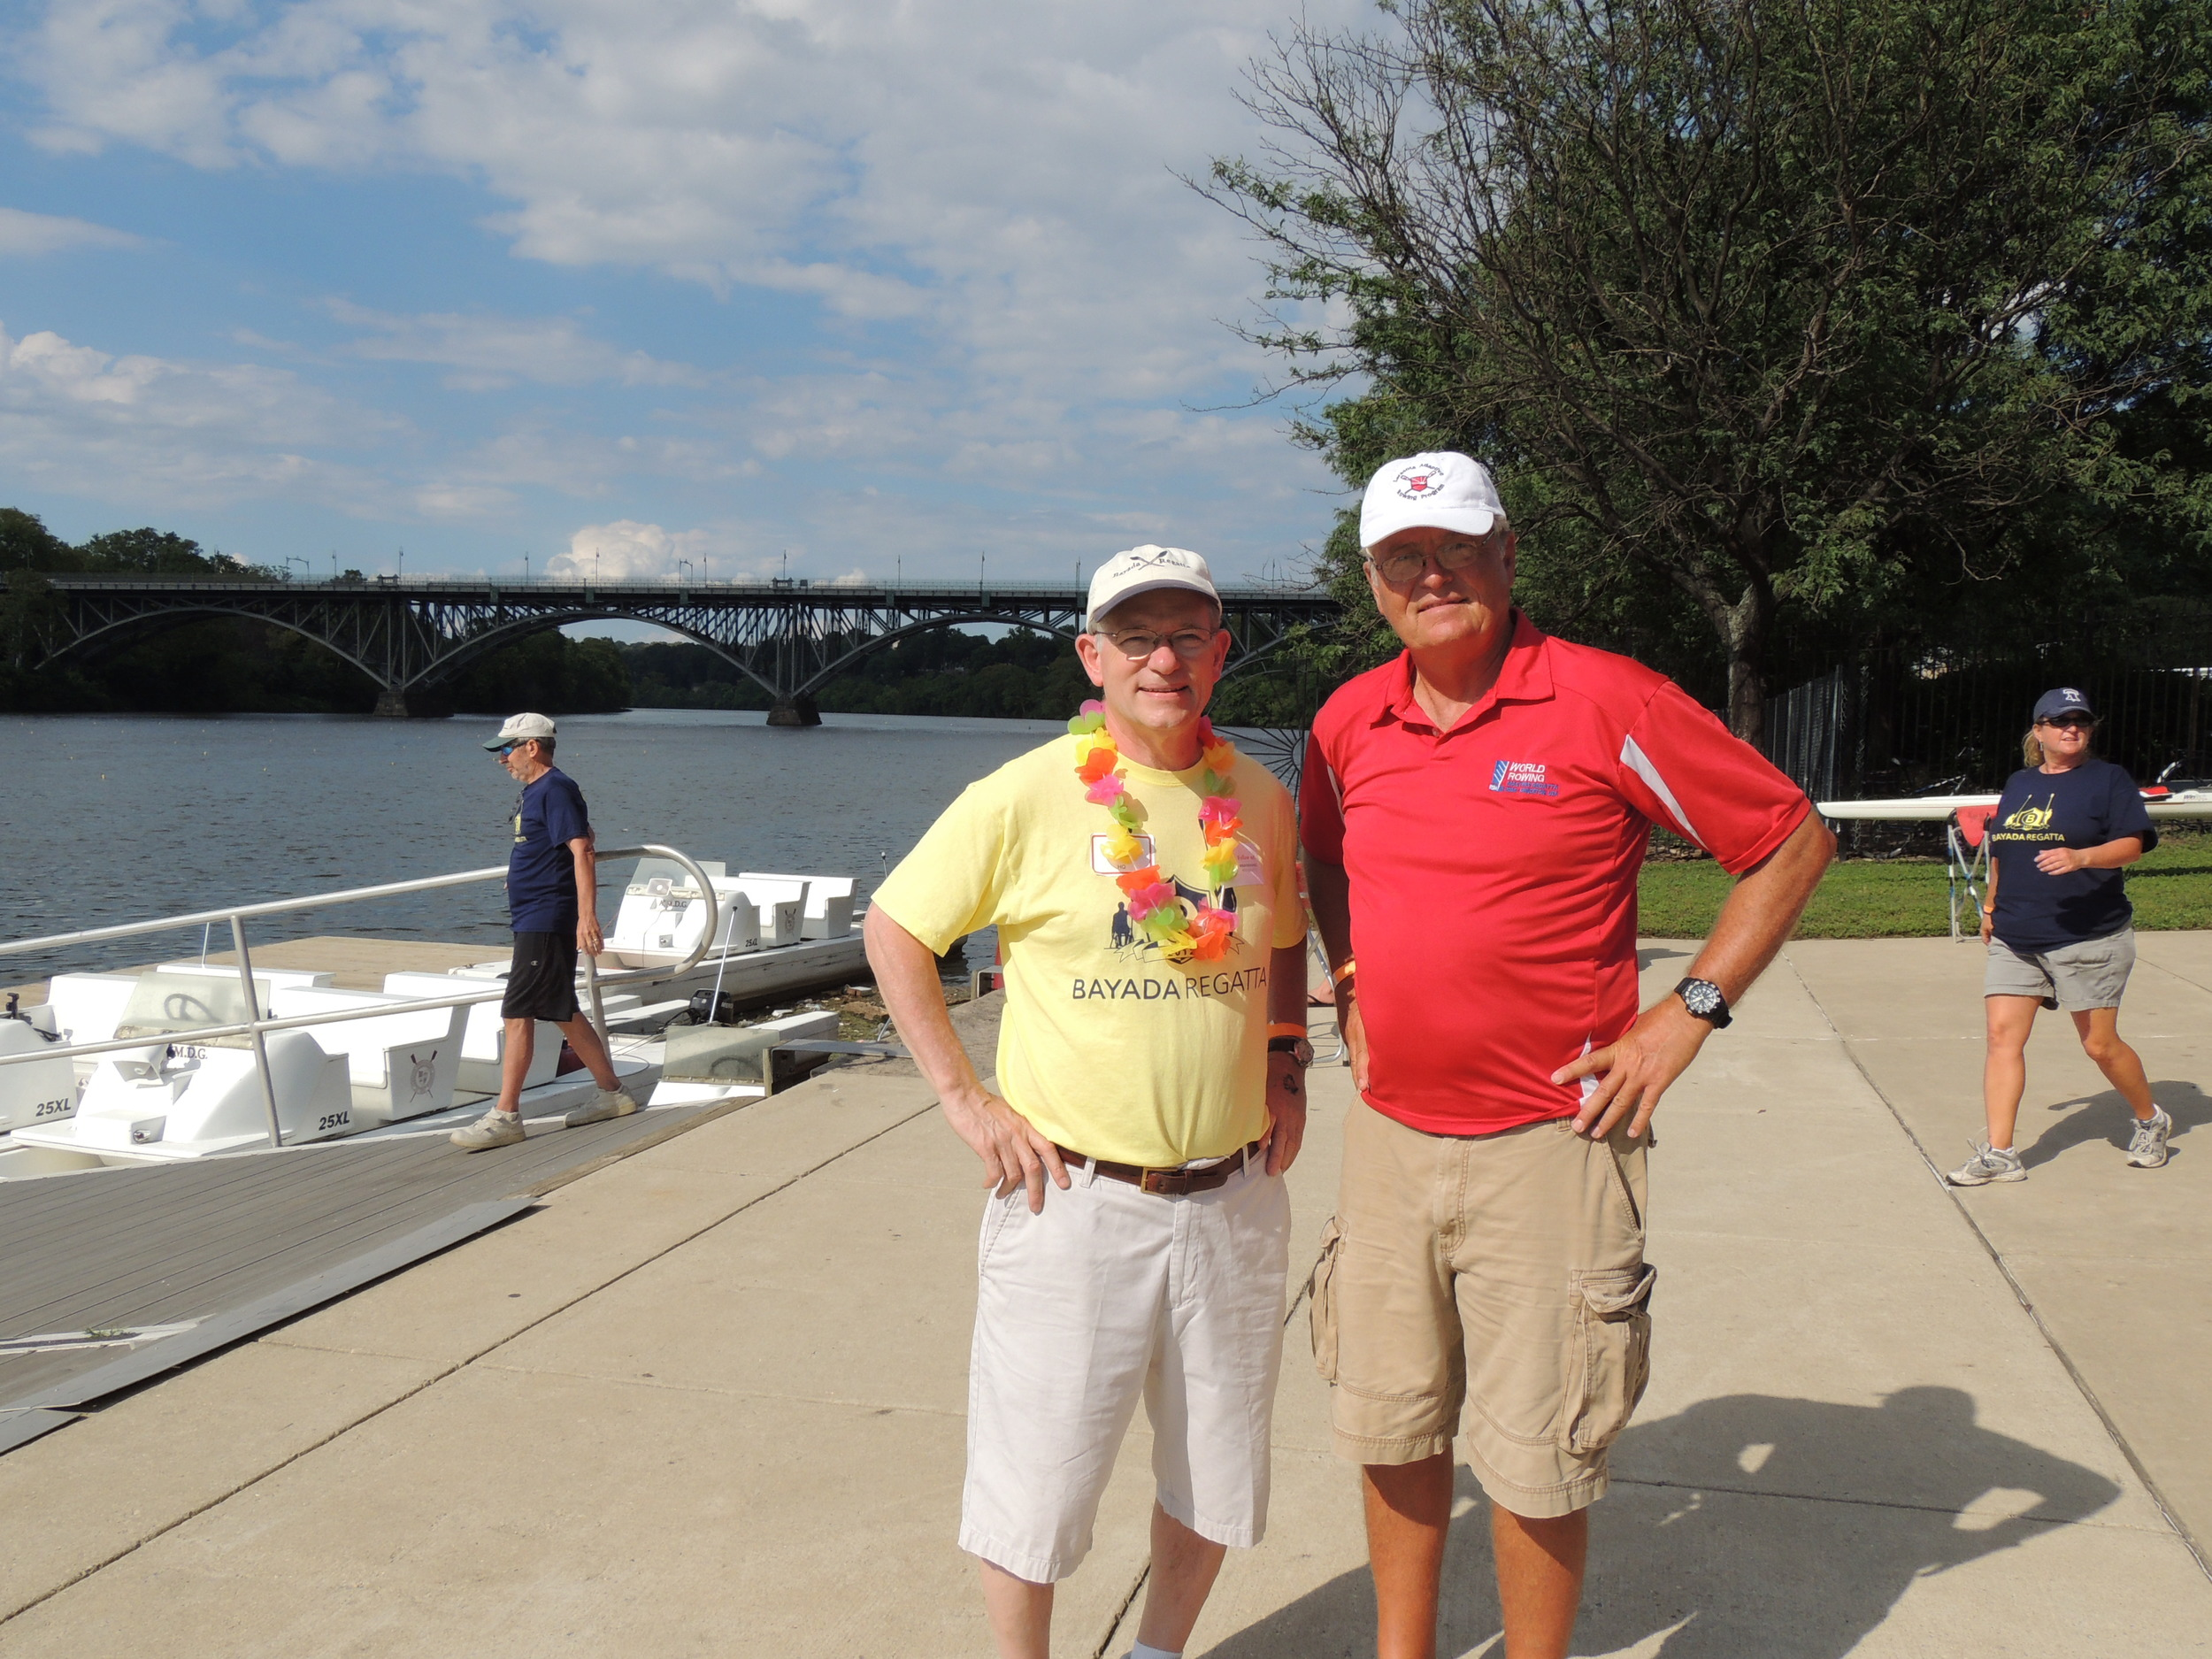 Regatta Founder Mark Baiada (Left) and Joe Dobson discussing adaptive rowing at the   2012 Bayada Regatta.